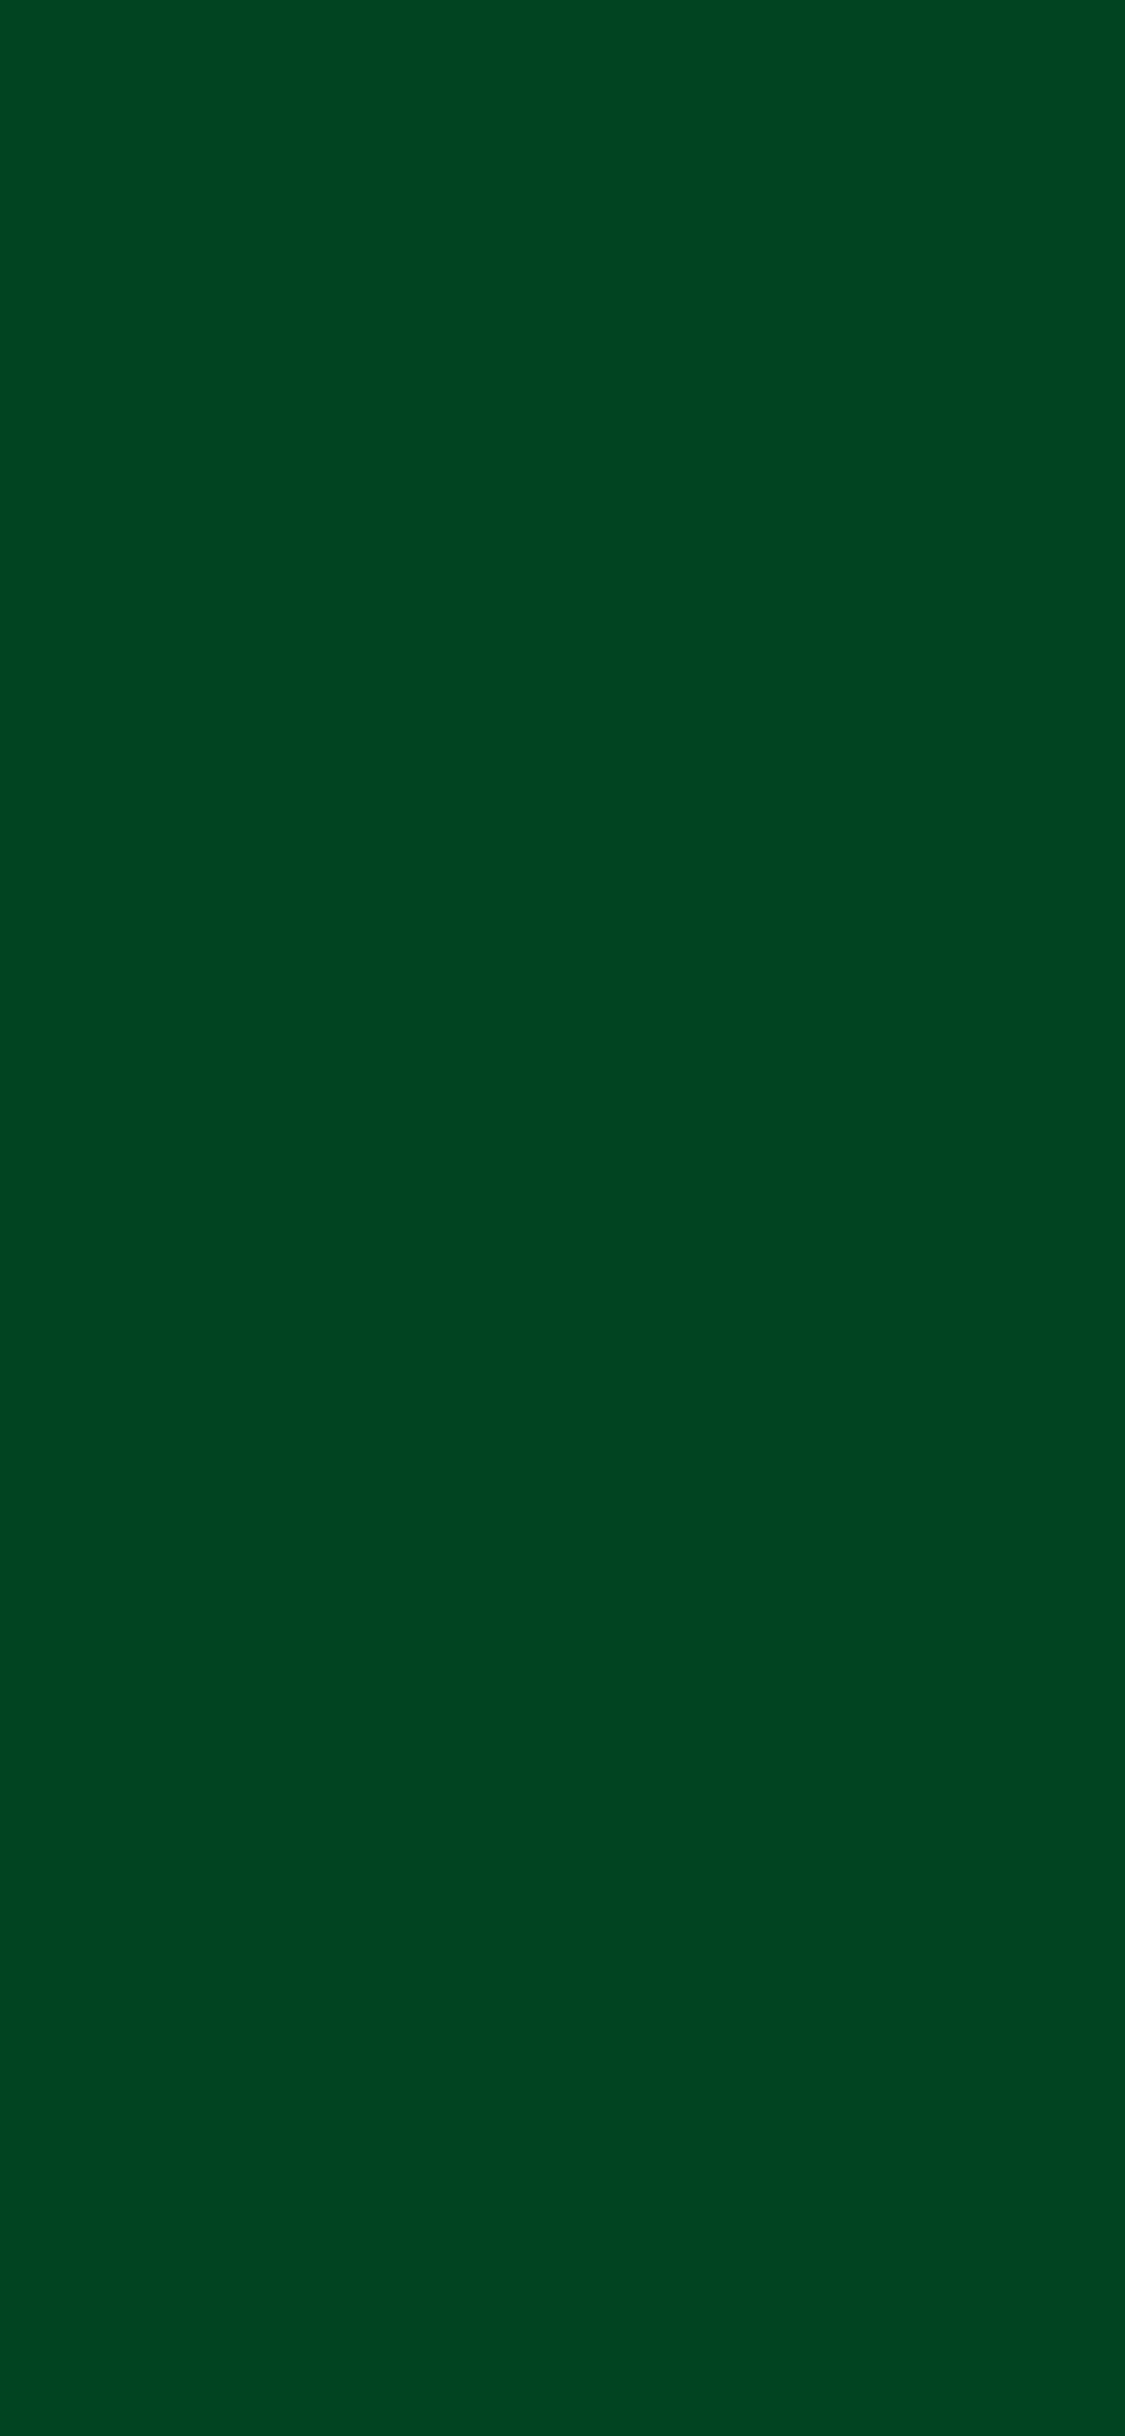 1125x2436 UP Forest Green Solid Color Background